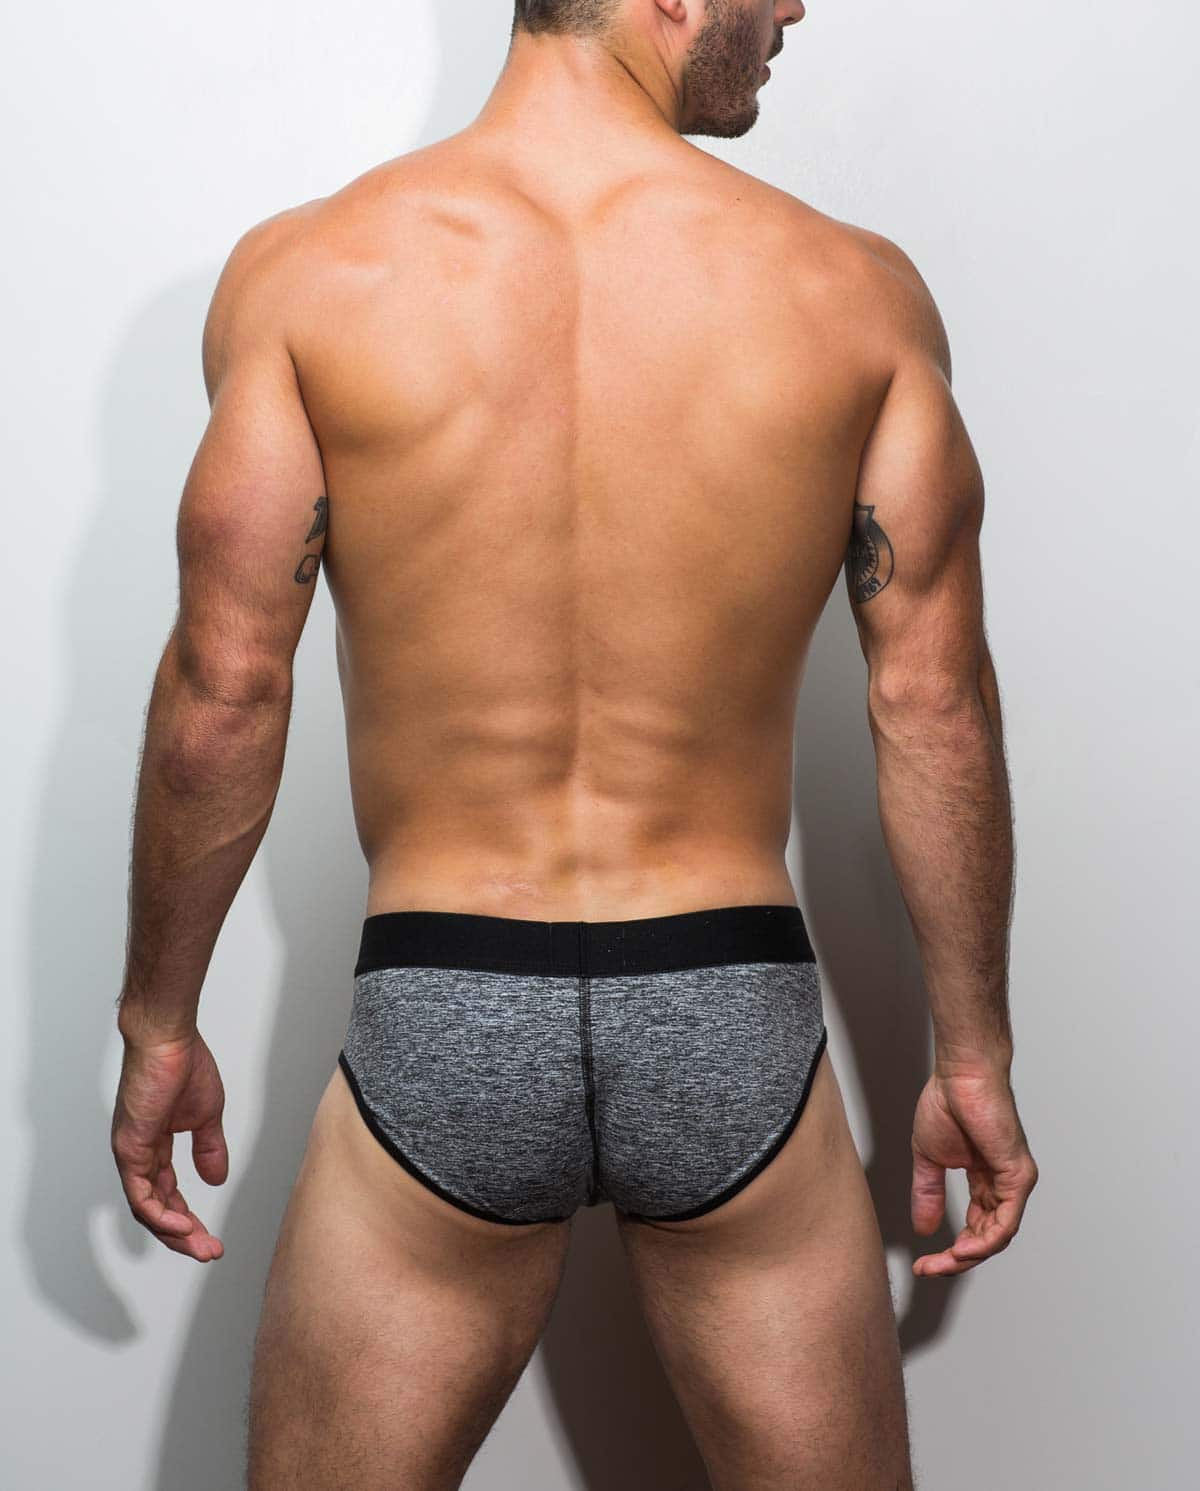 Male underwear model wearing Marco Marco Gray All Over Men's Brief - Front